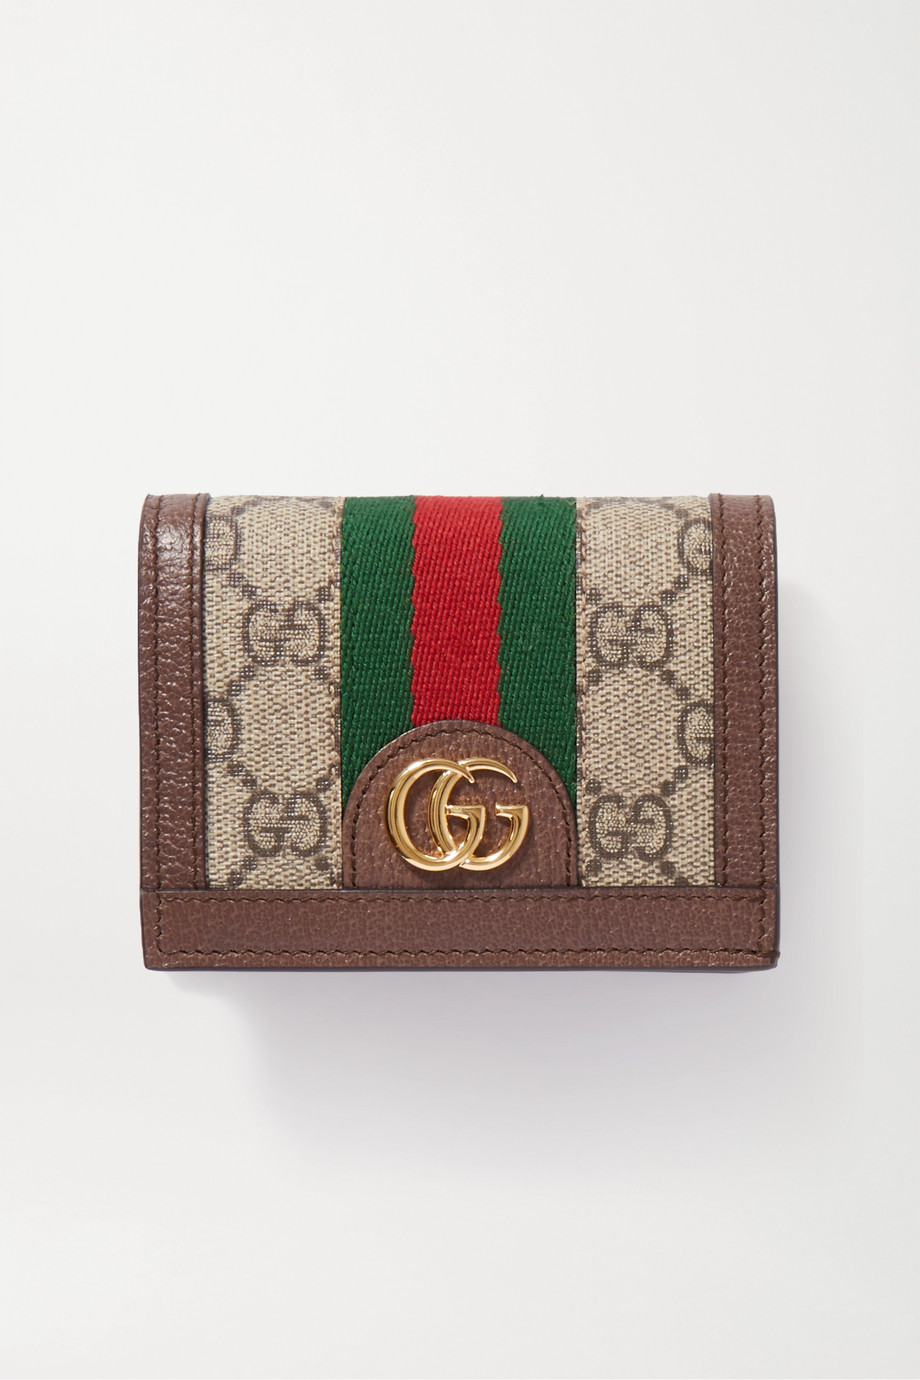 GUCCI Ophidia textured-leather printed coated-canvas wallet